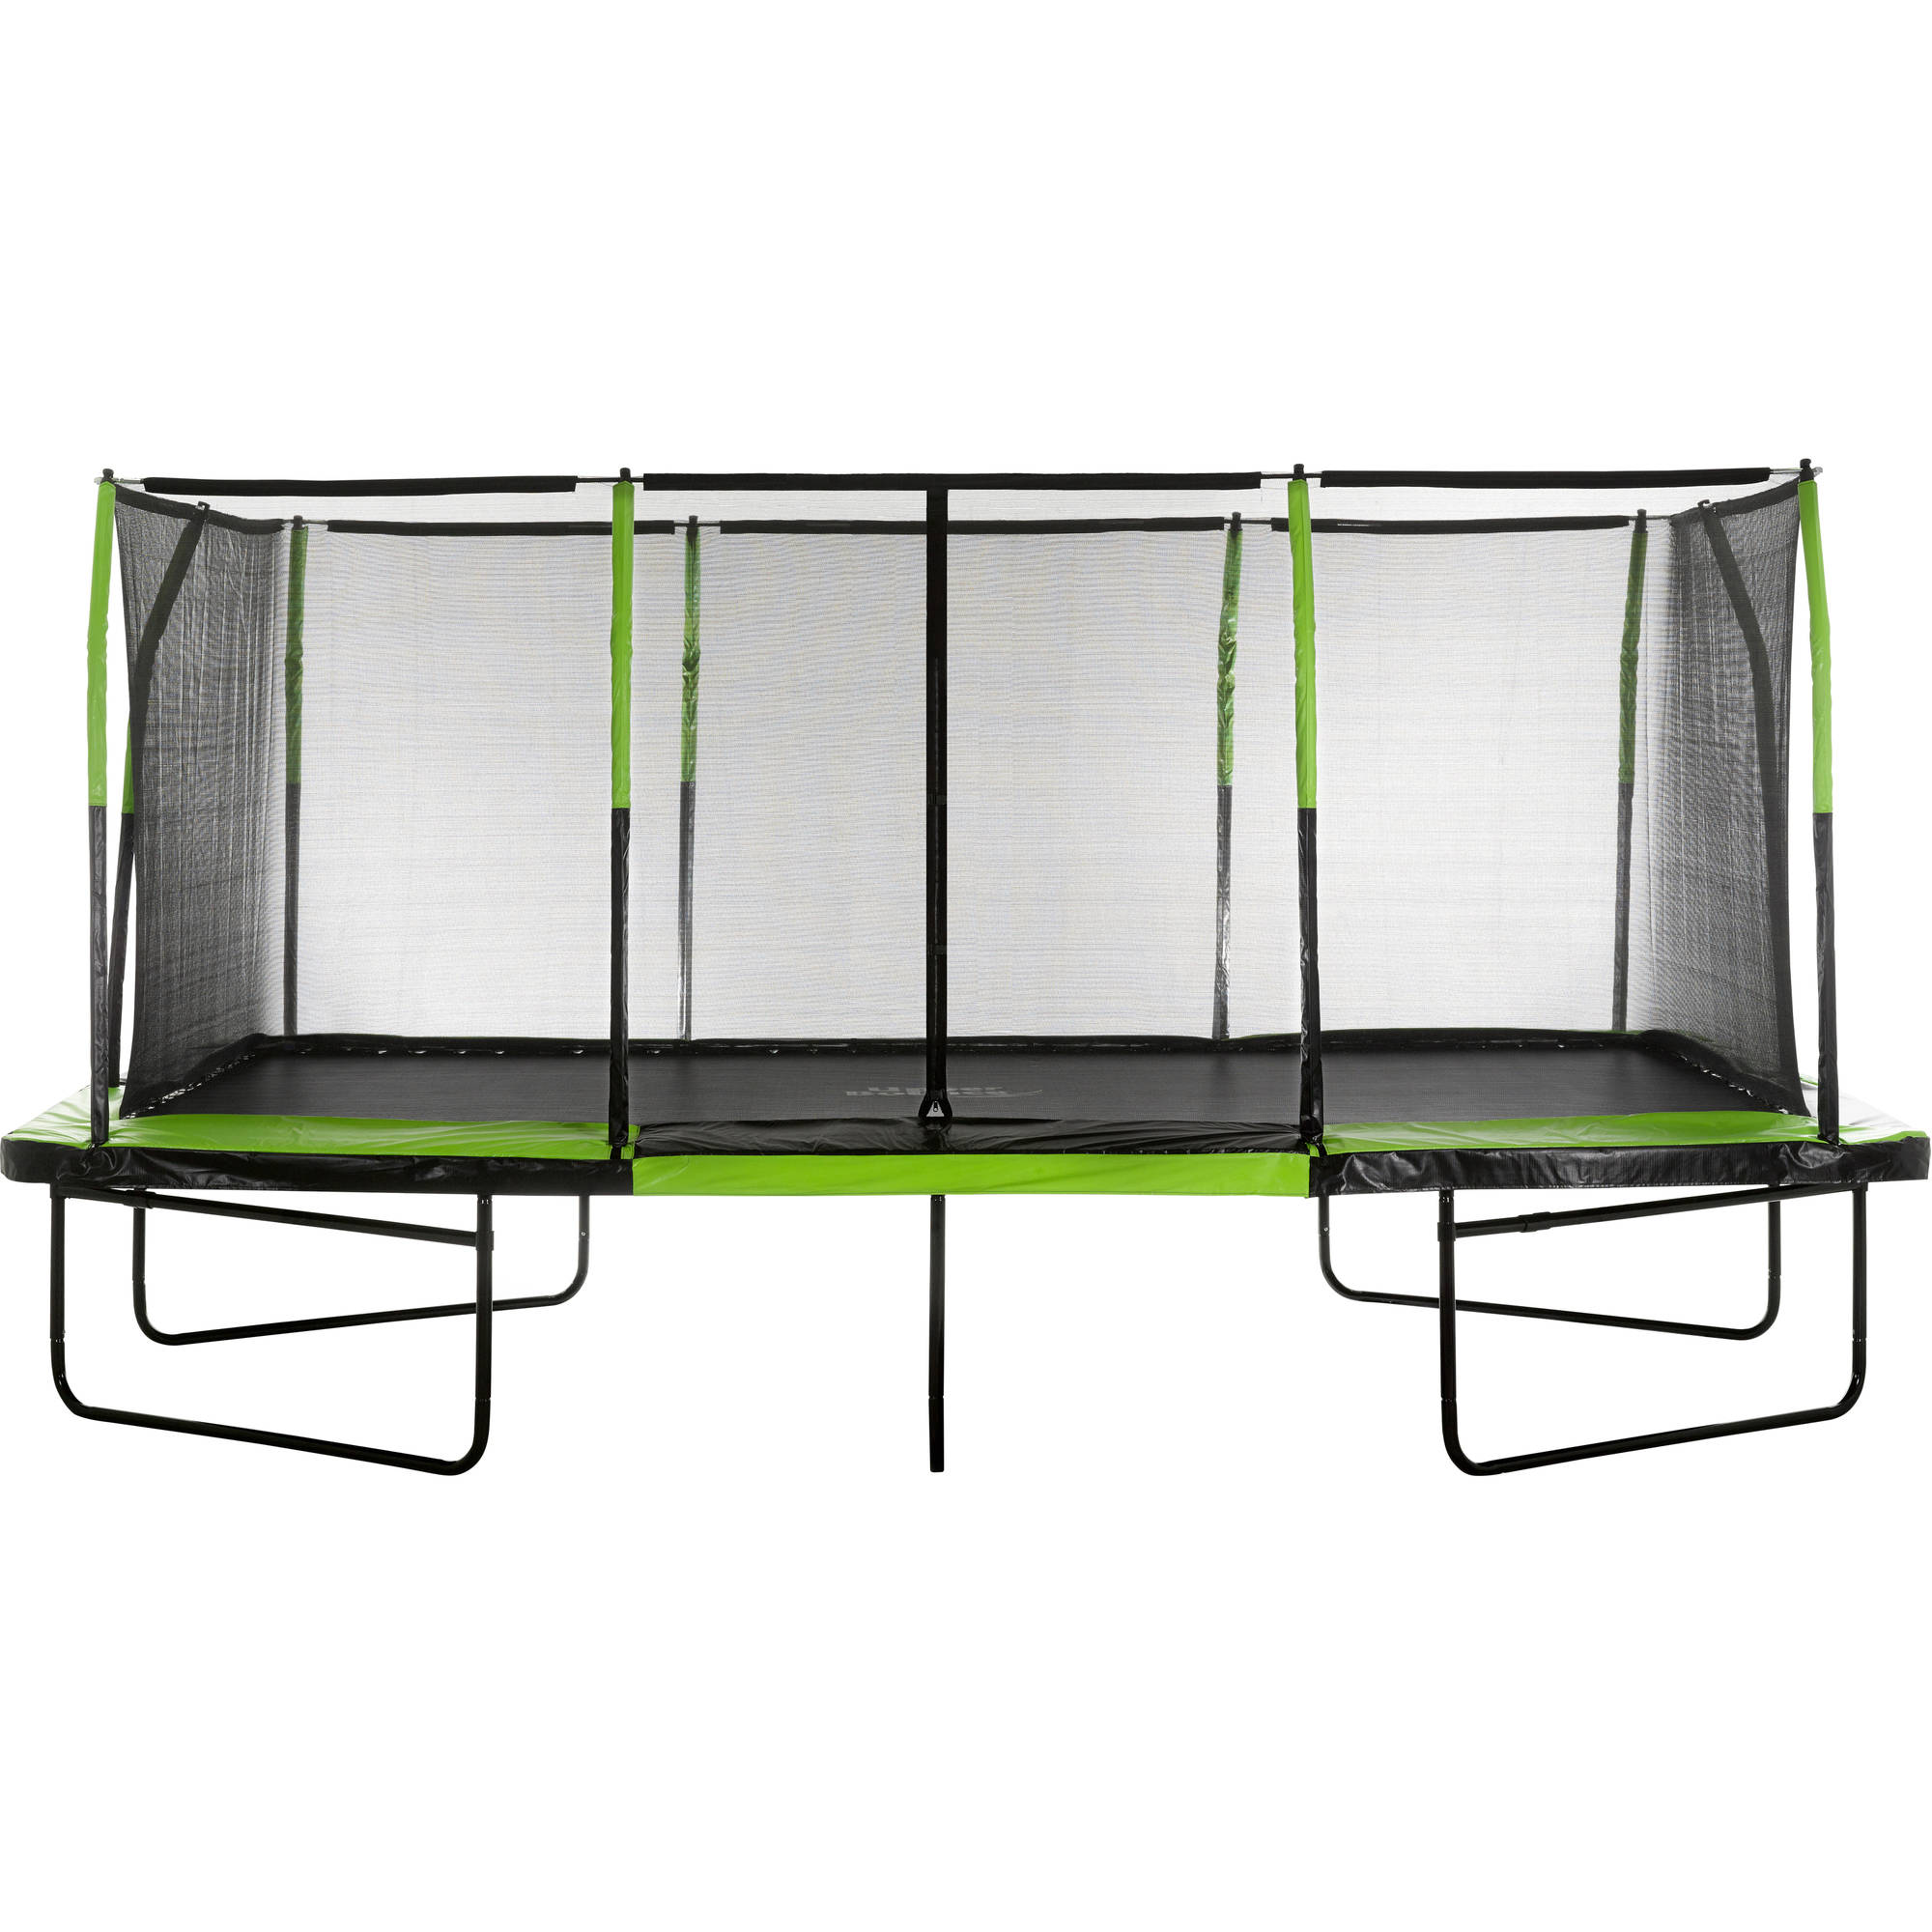 Upper Bounce Rectangle 10 x 17 Foot Trampoline, with Enclosure, Green